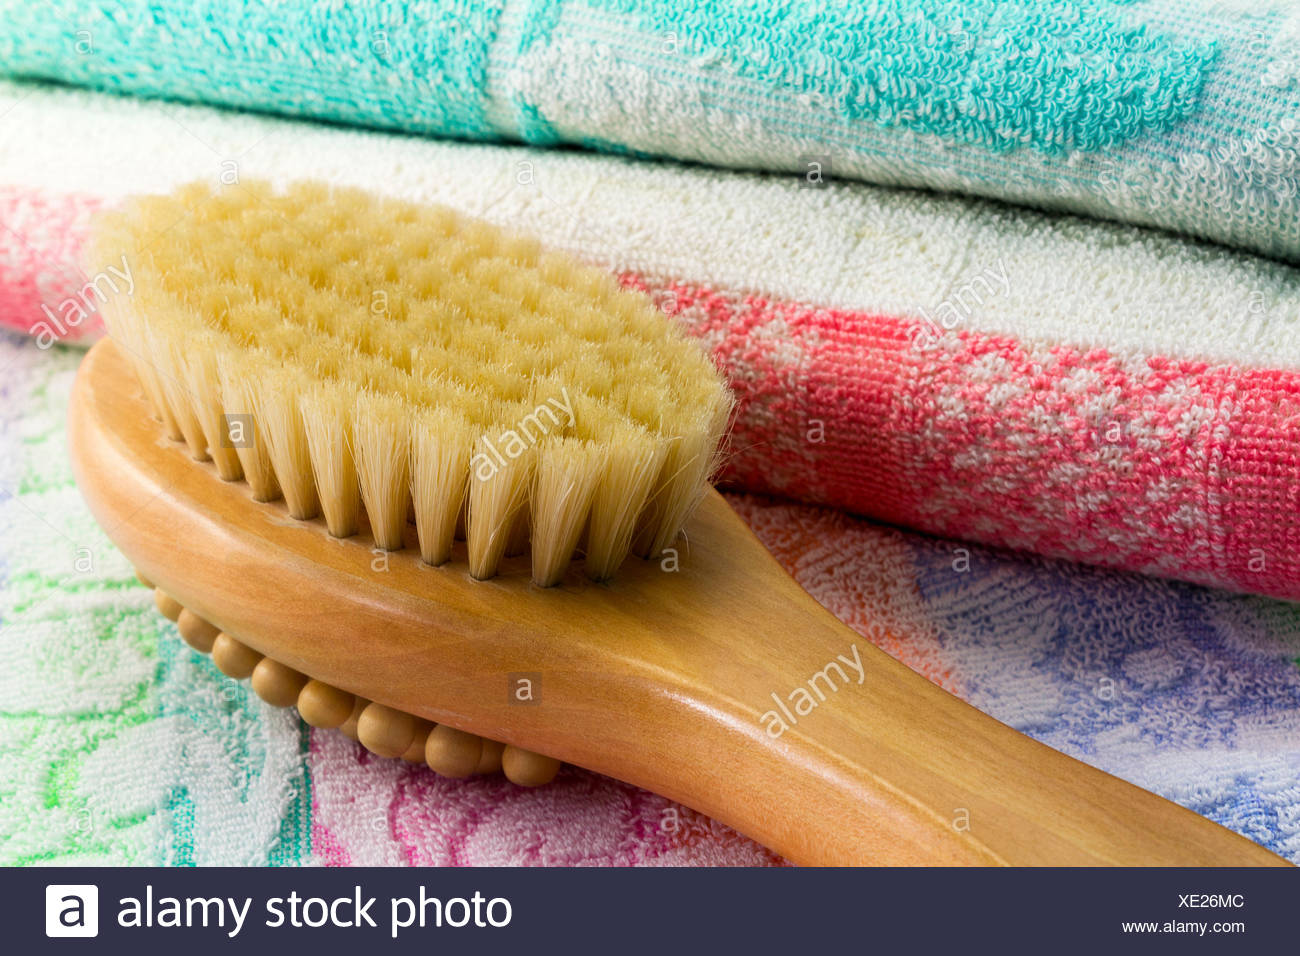 Wooden light brown brush with the long handle for body massage. Has wooden balls for massage and a rigid bristle for skin massage. Terry towel with an ornament. - Stock Image